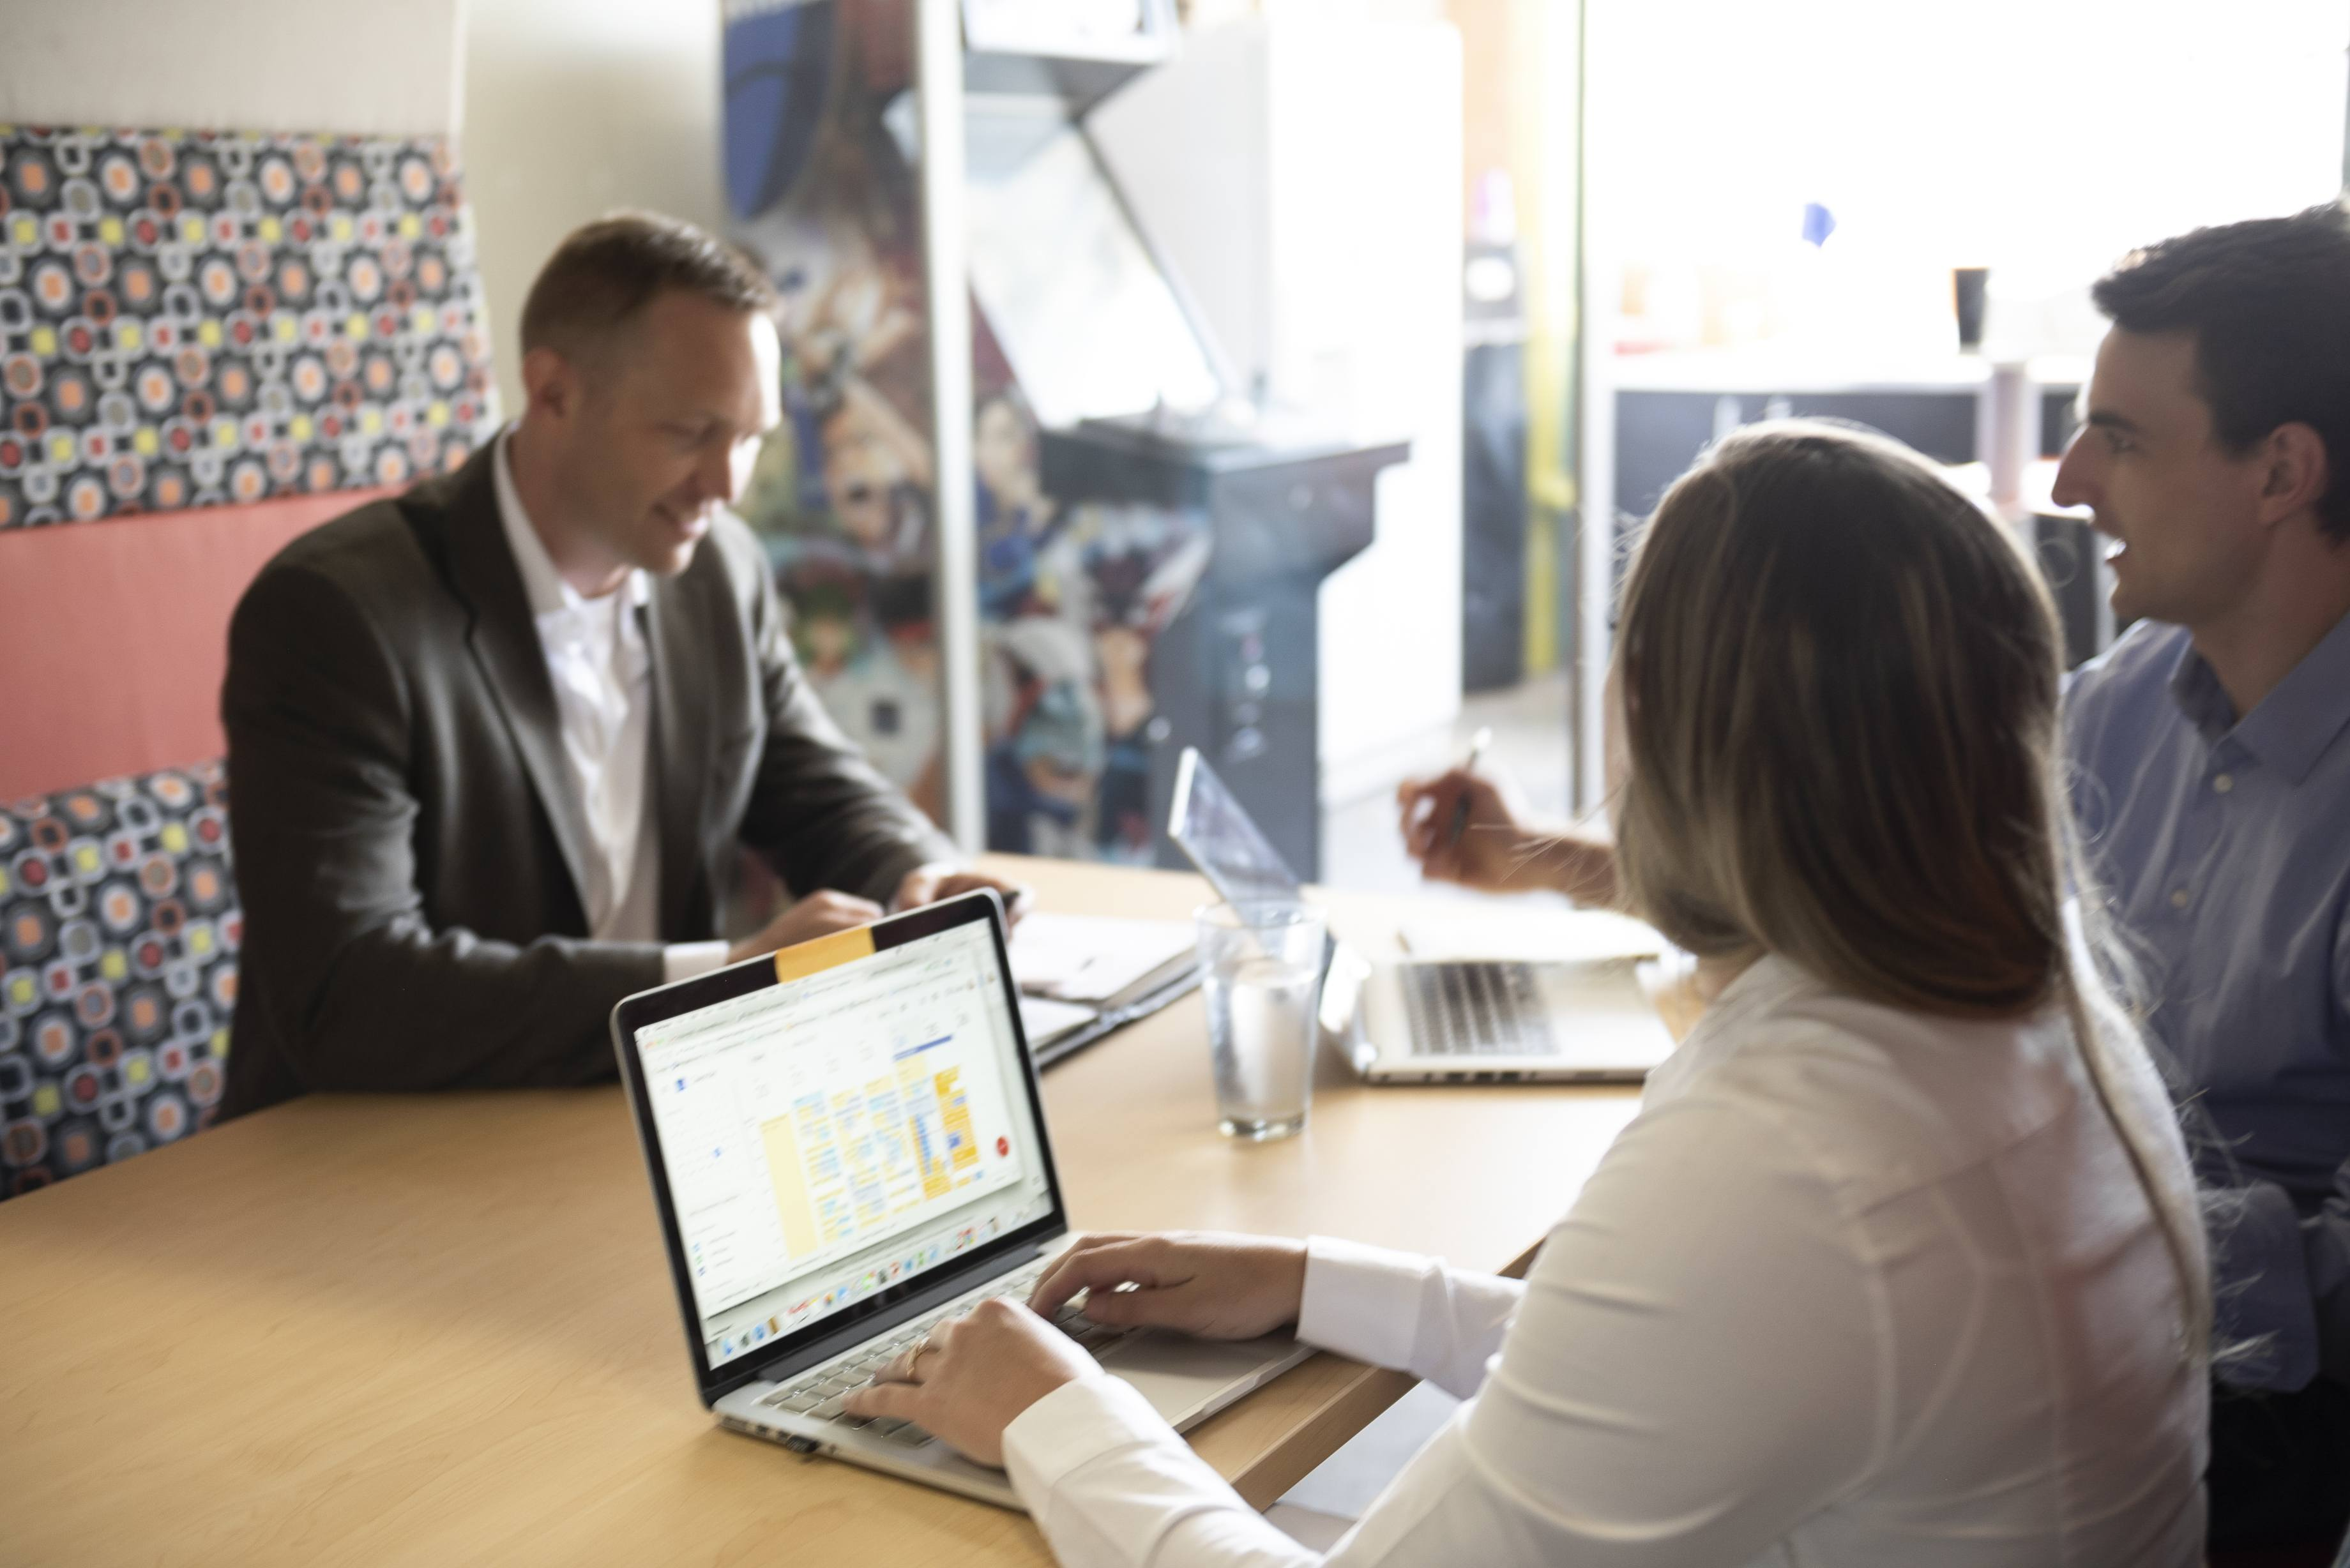 Build or Buy? Solving Business Problems With the Right Software